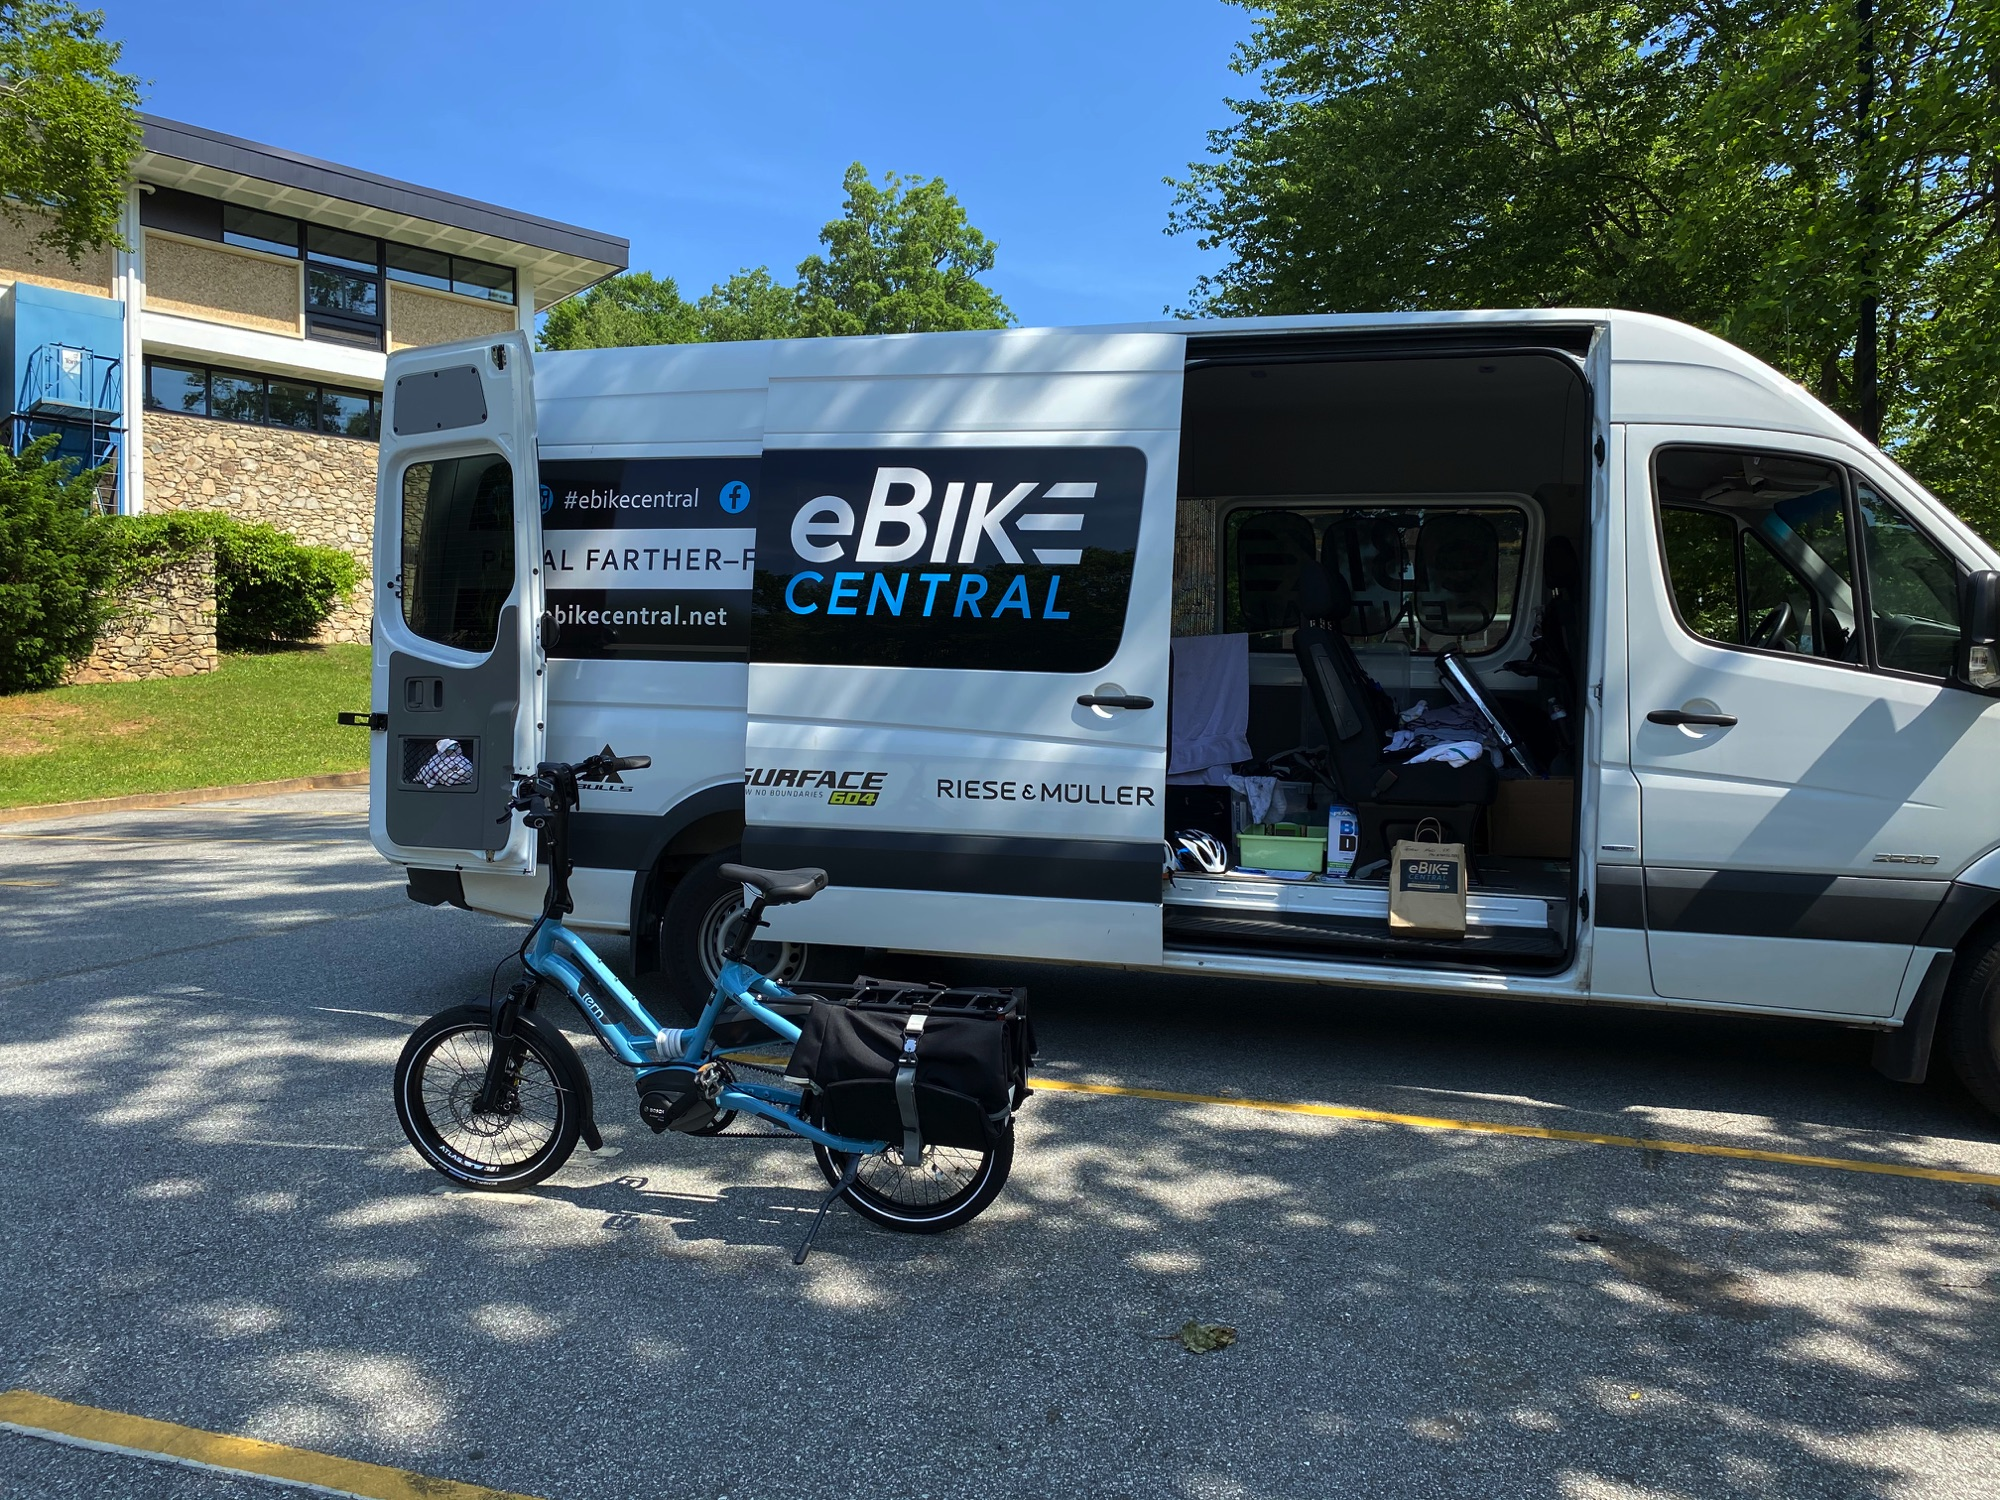 eBike Central in Asheville NC